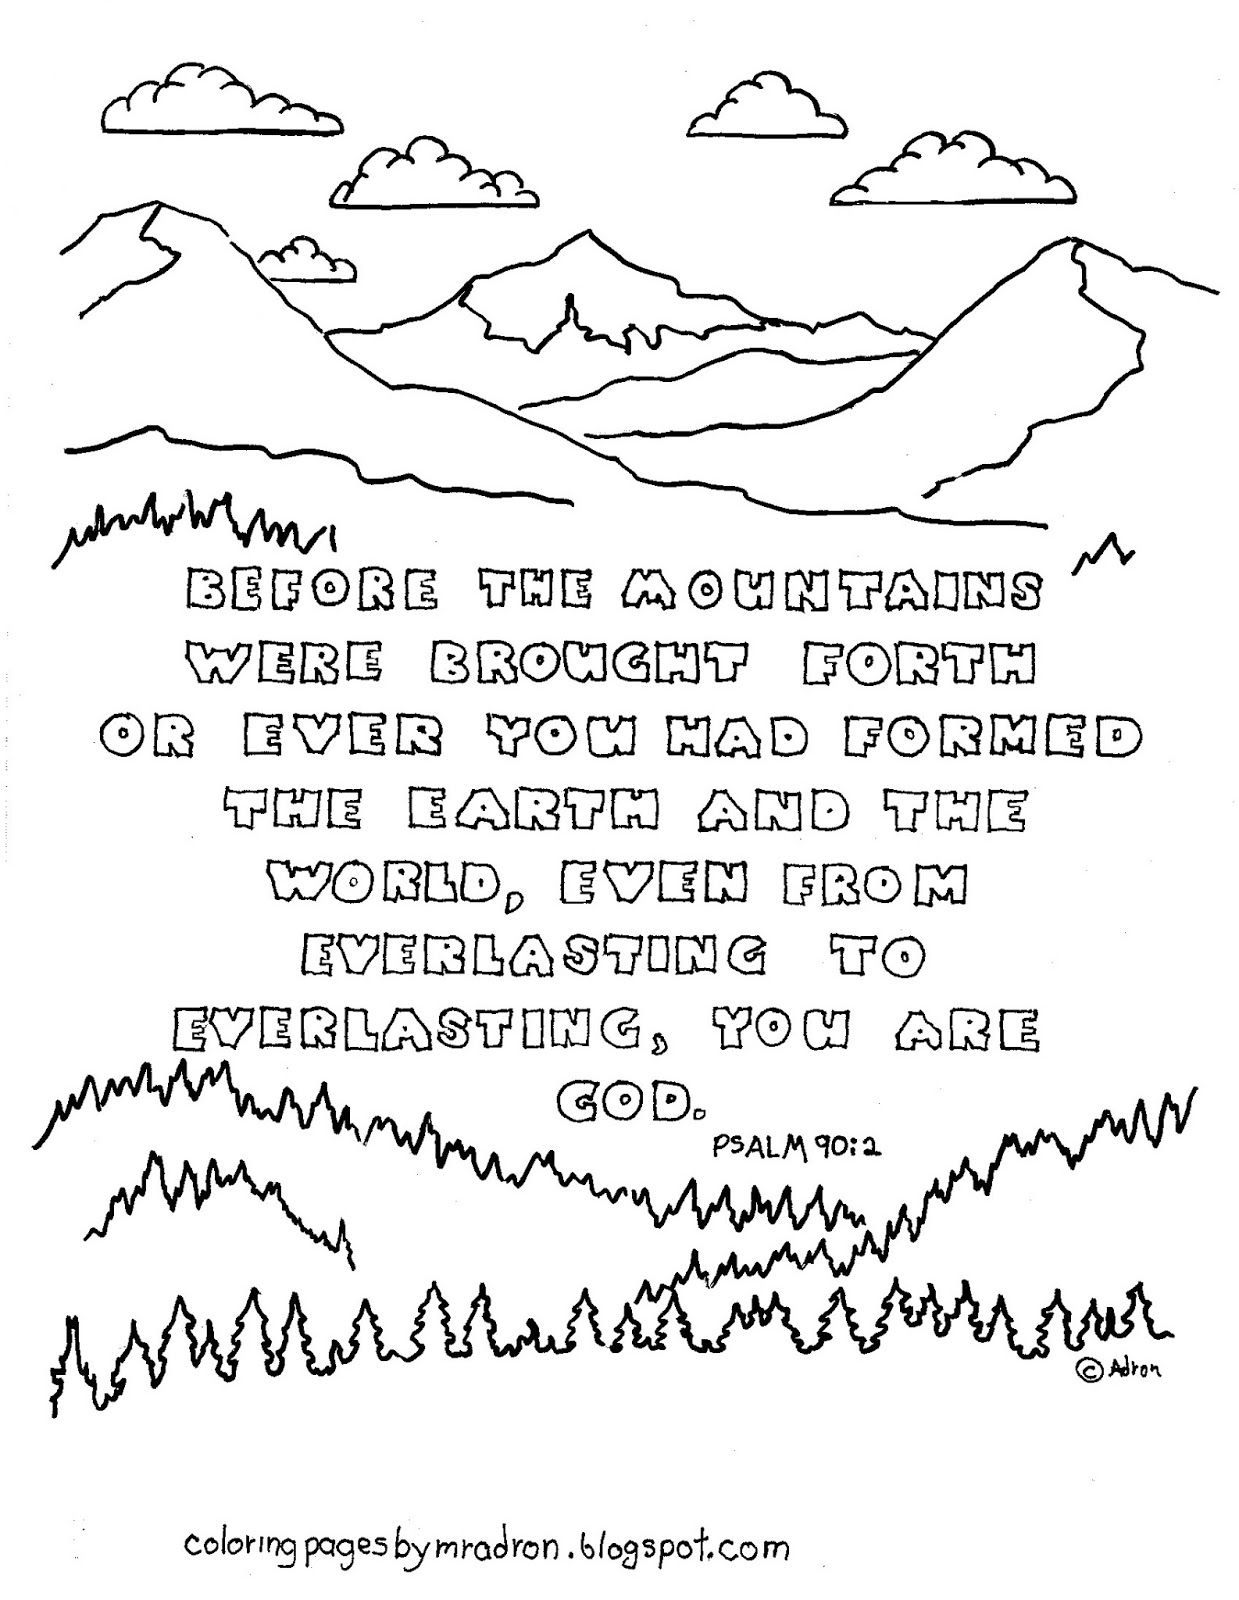 Coloring Pages For Kids By Mr Adron Printable Page Psalm From Everlasting You Are God